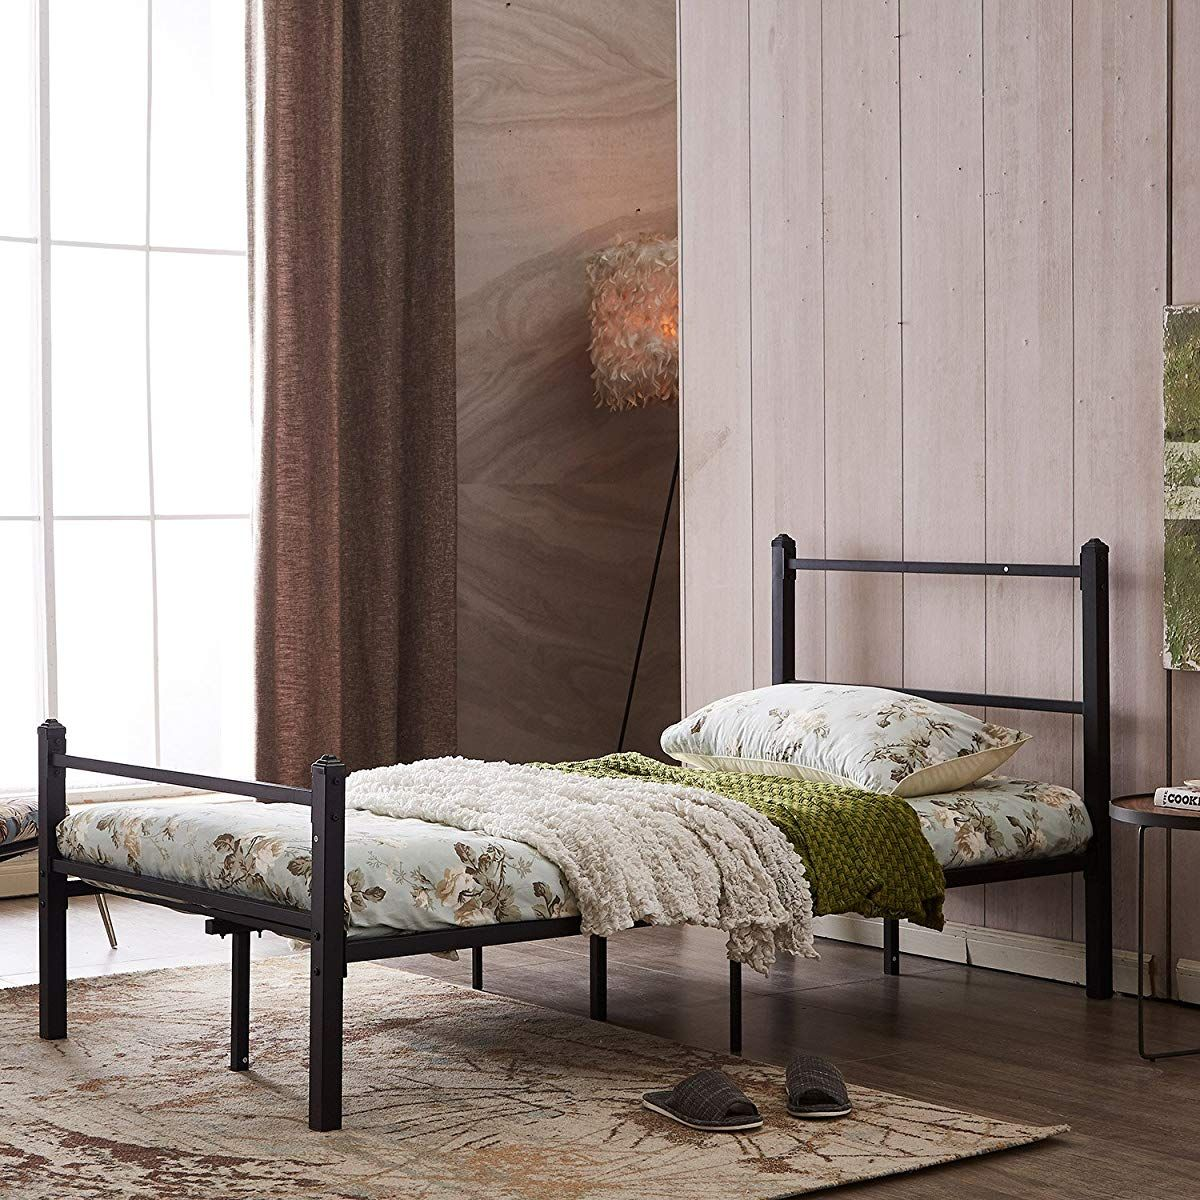 GreenForest Heavy Duty Bed Frame Twin Size Nonslip Metal